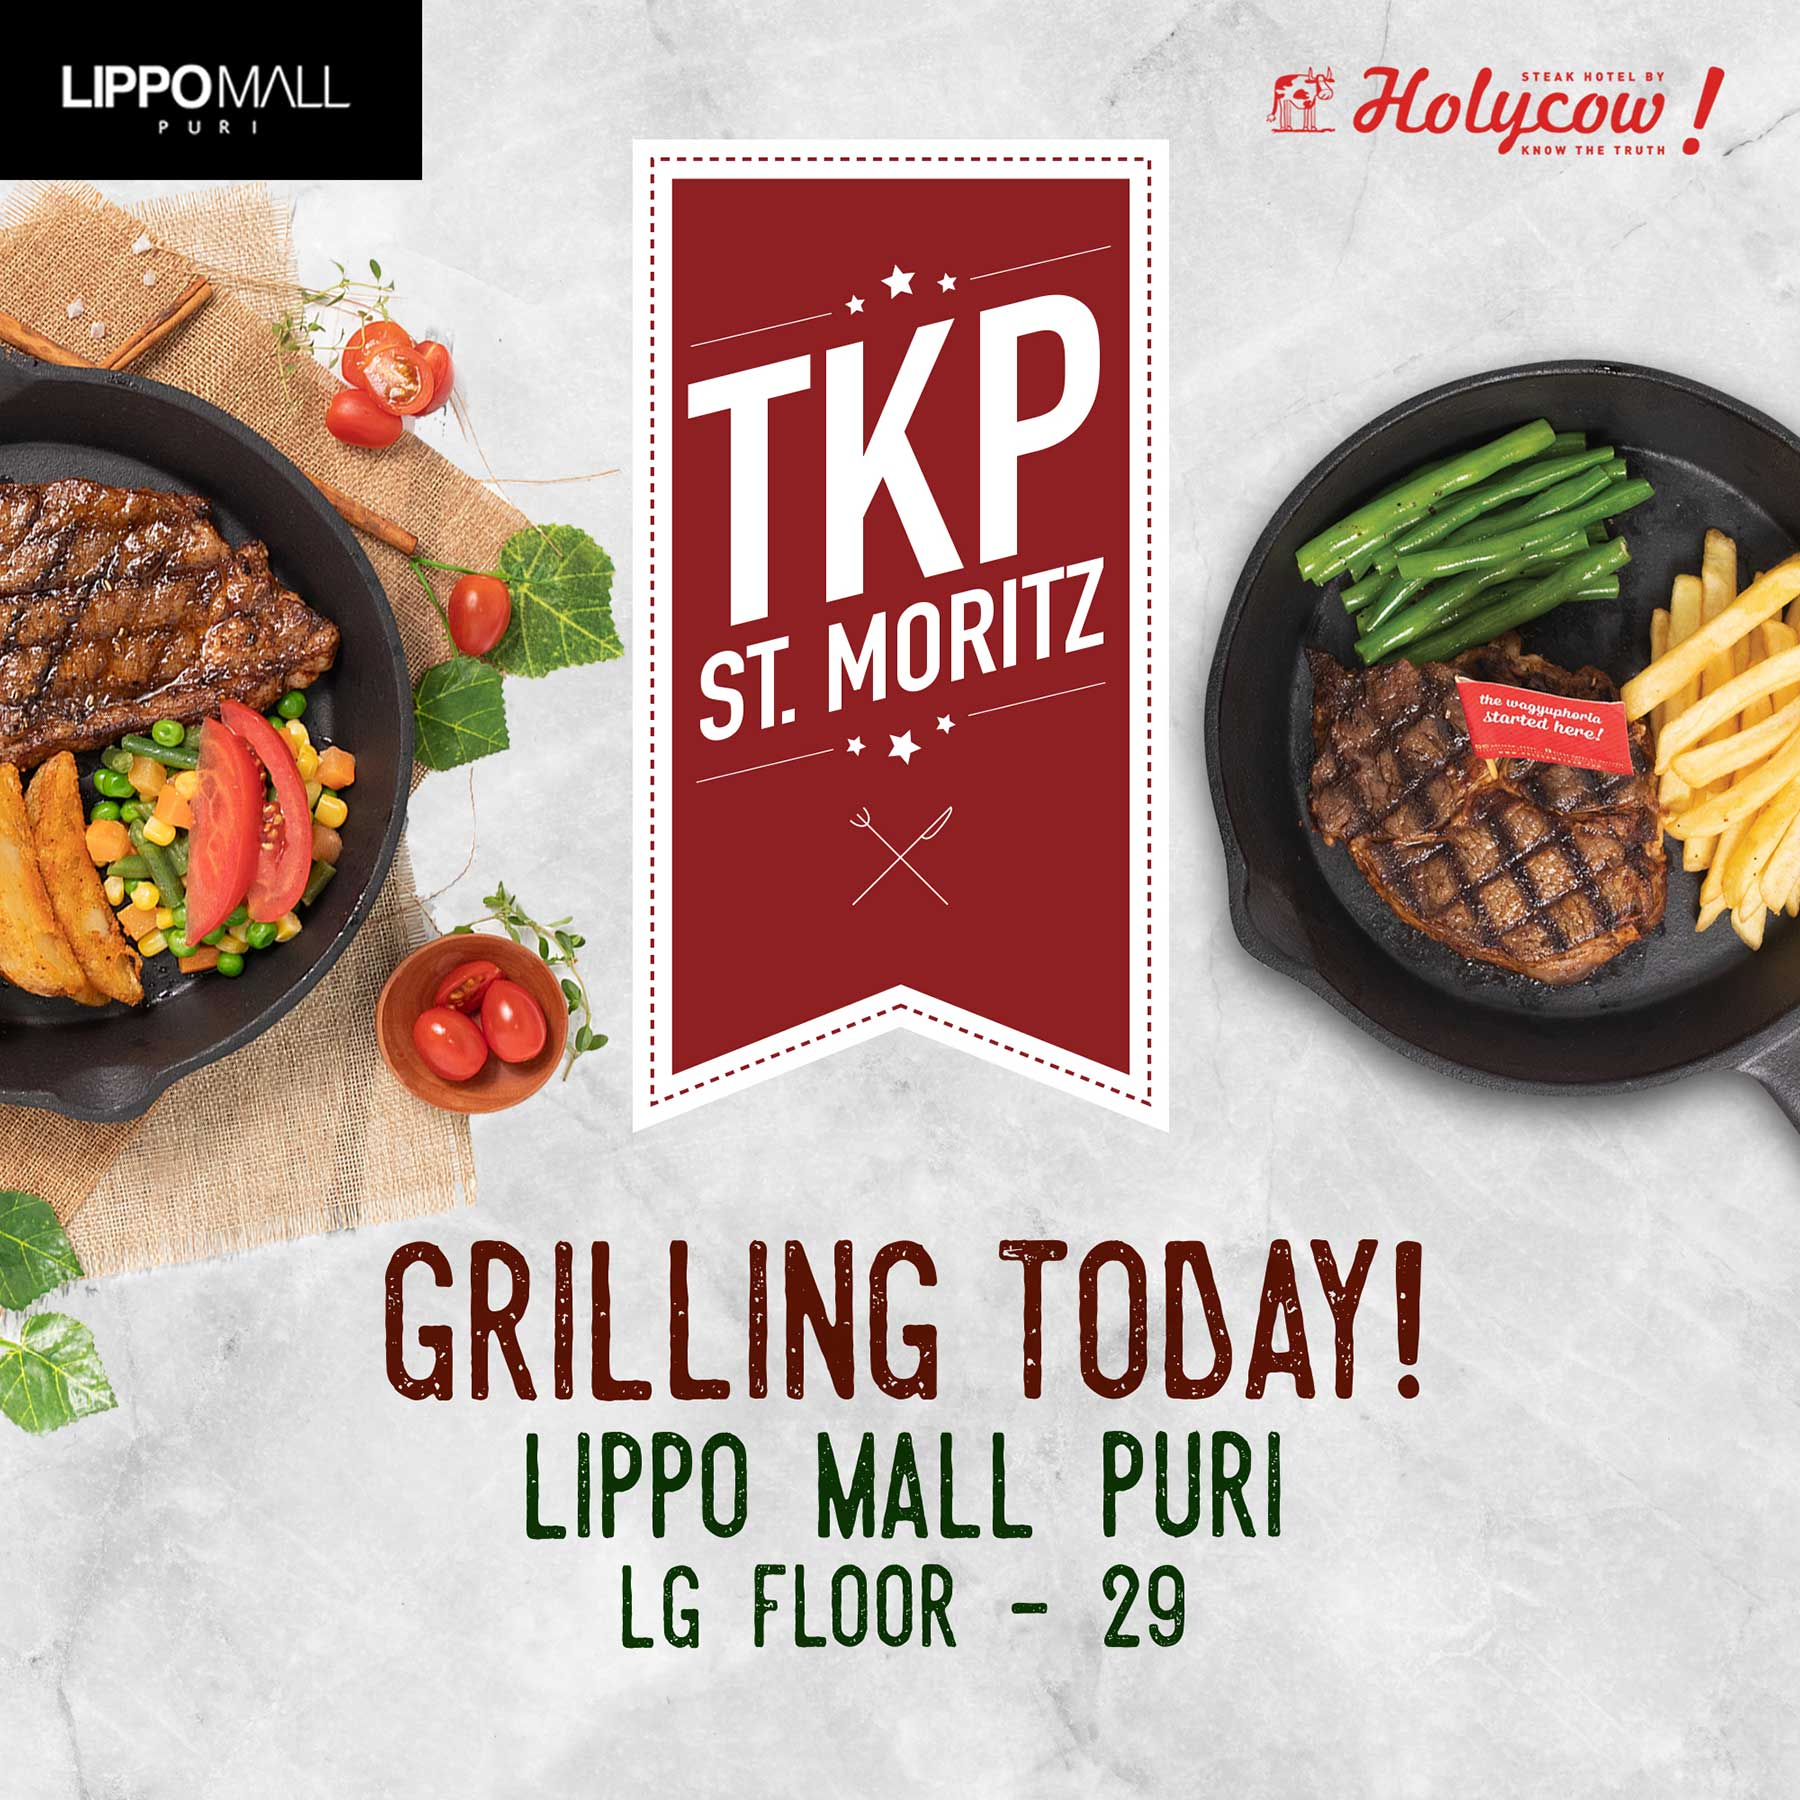 Holycow now open in lippo mall puri st. moritz